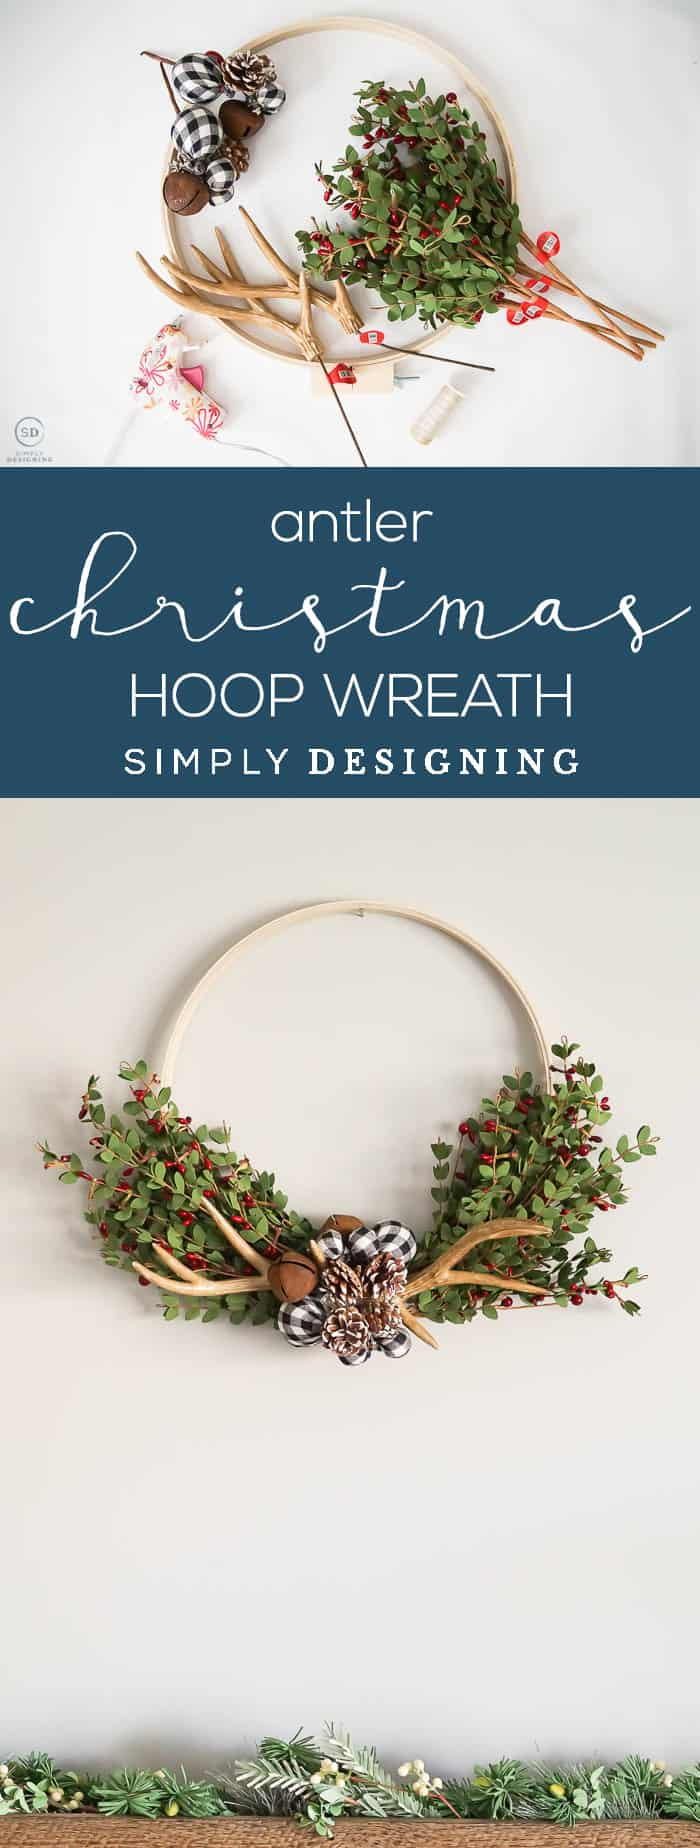 Antler Christmas Hoop Wreath - a really easy and beautiful farmhouse hoop wreath for the holidays